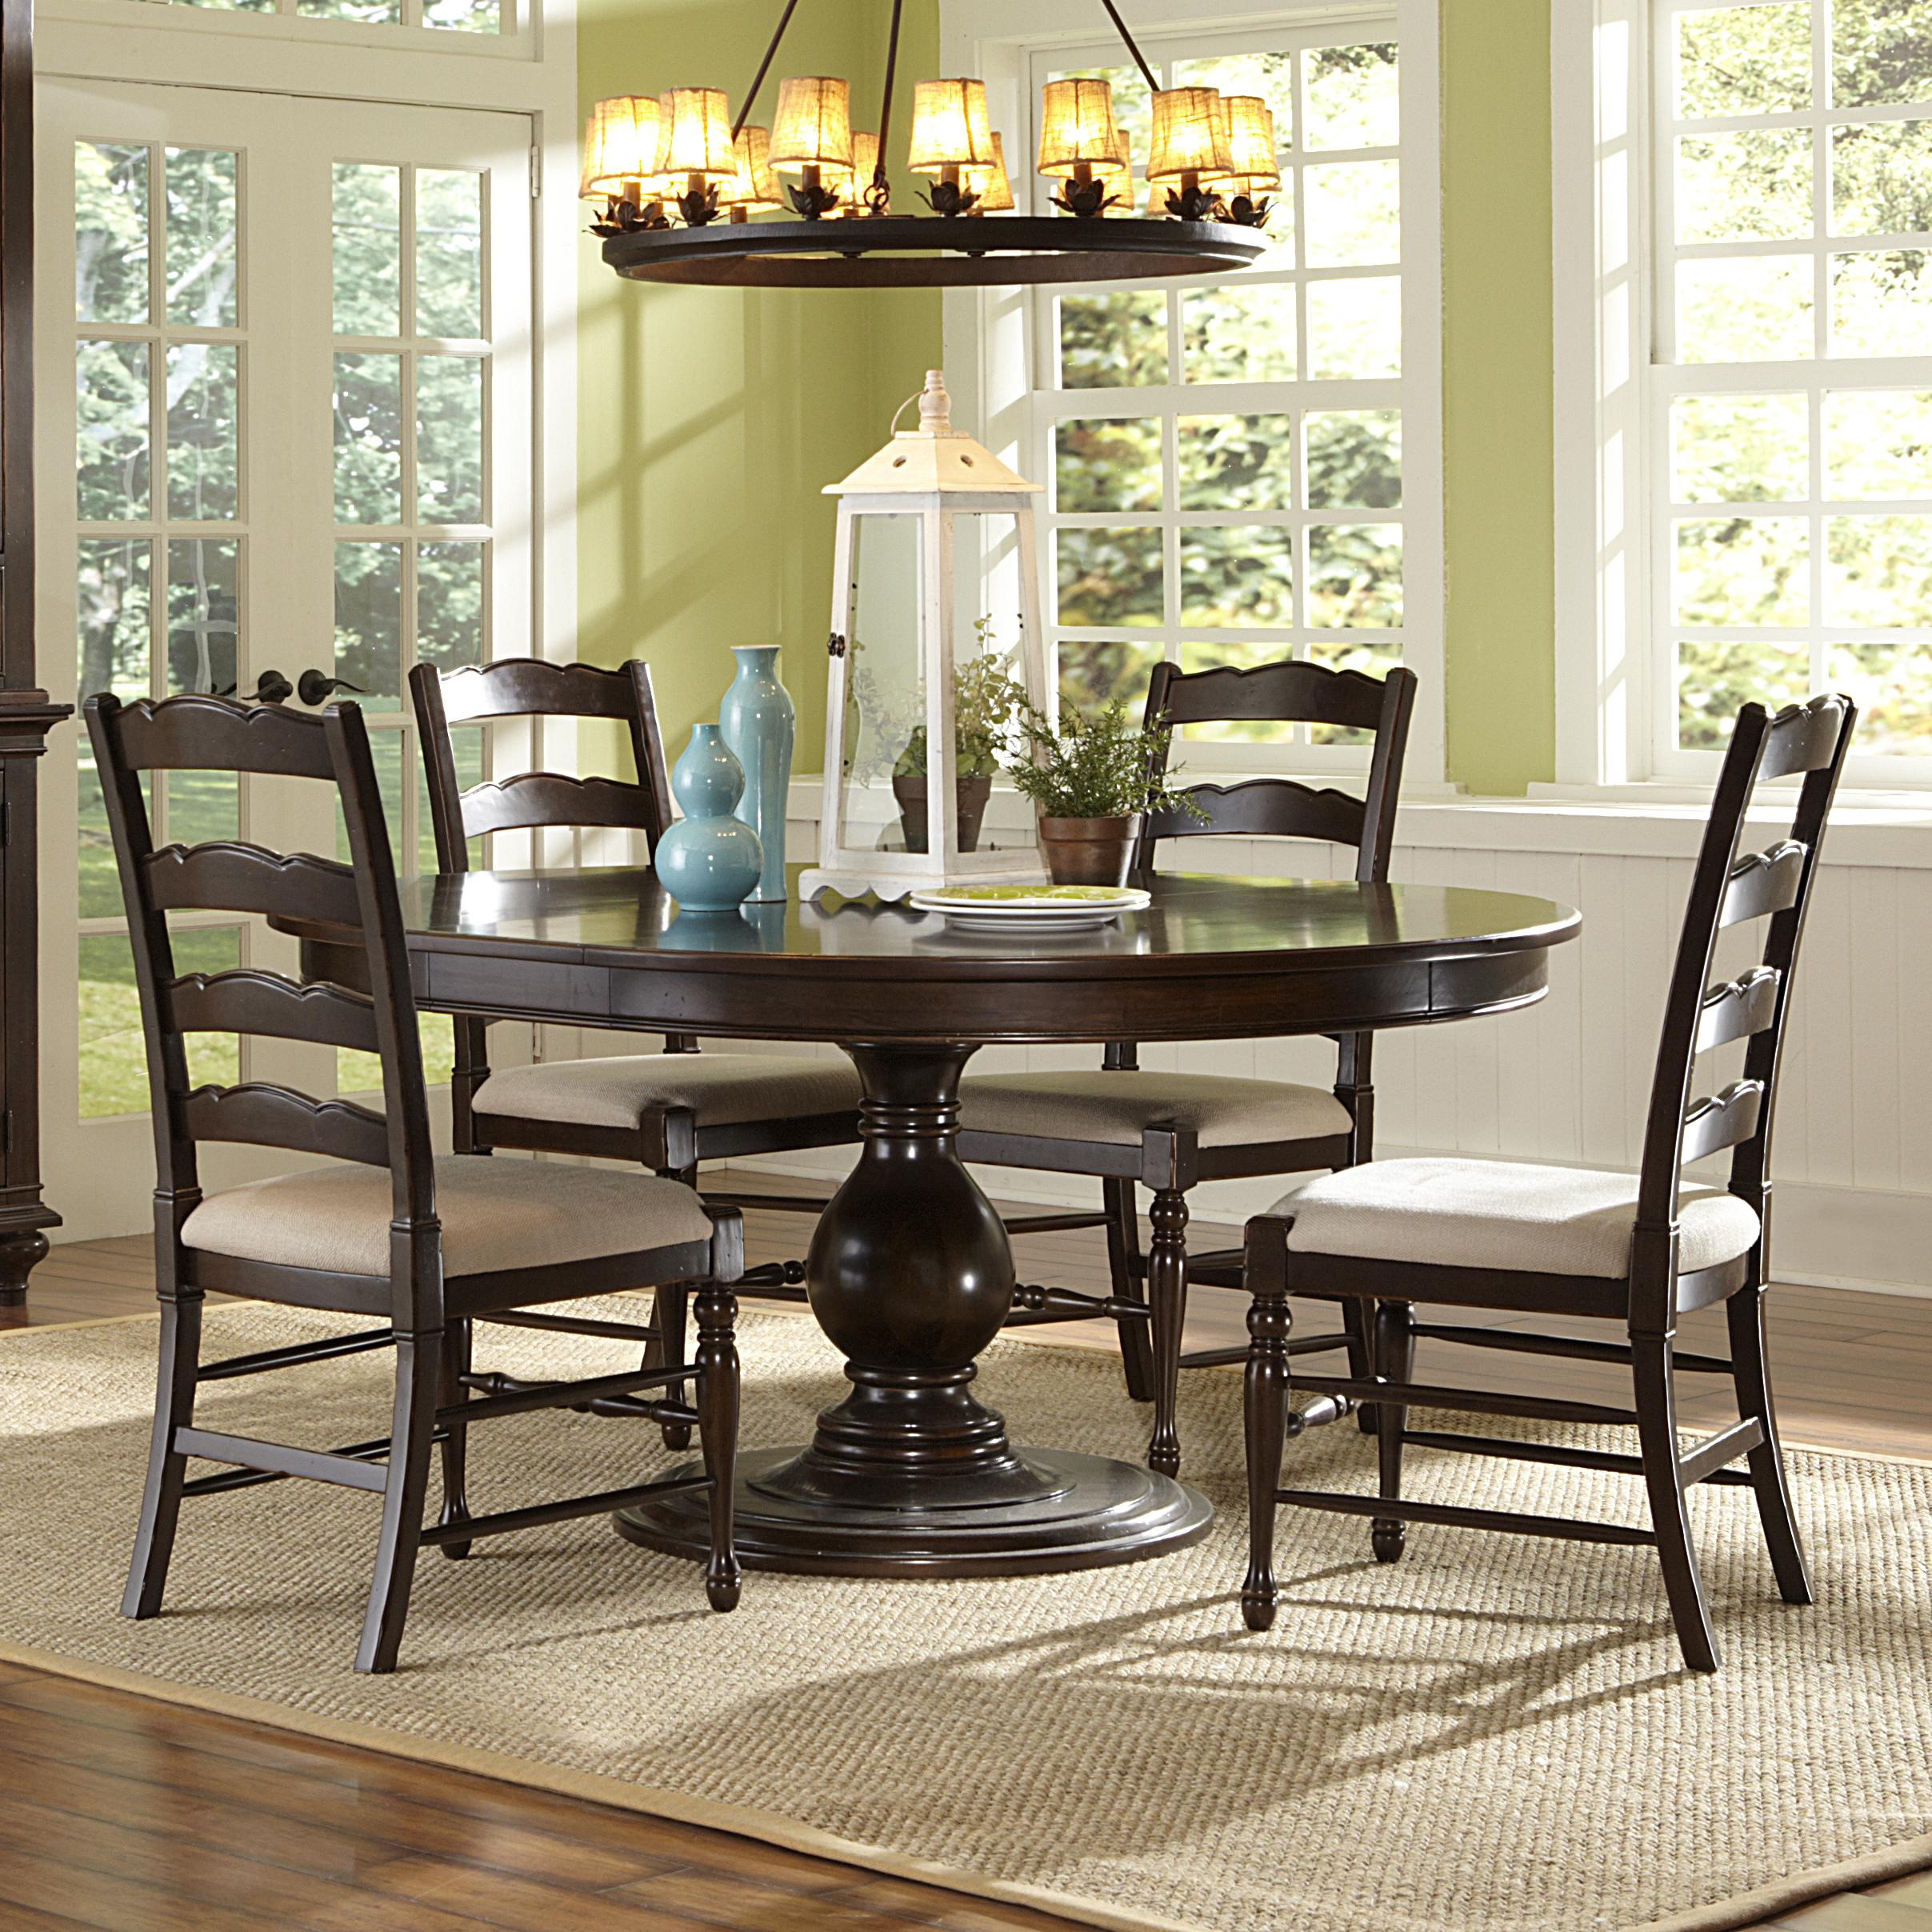 5 piece round table and chairs set - Magnussen Dining Room Furniture